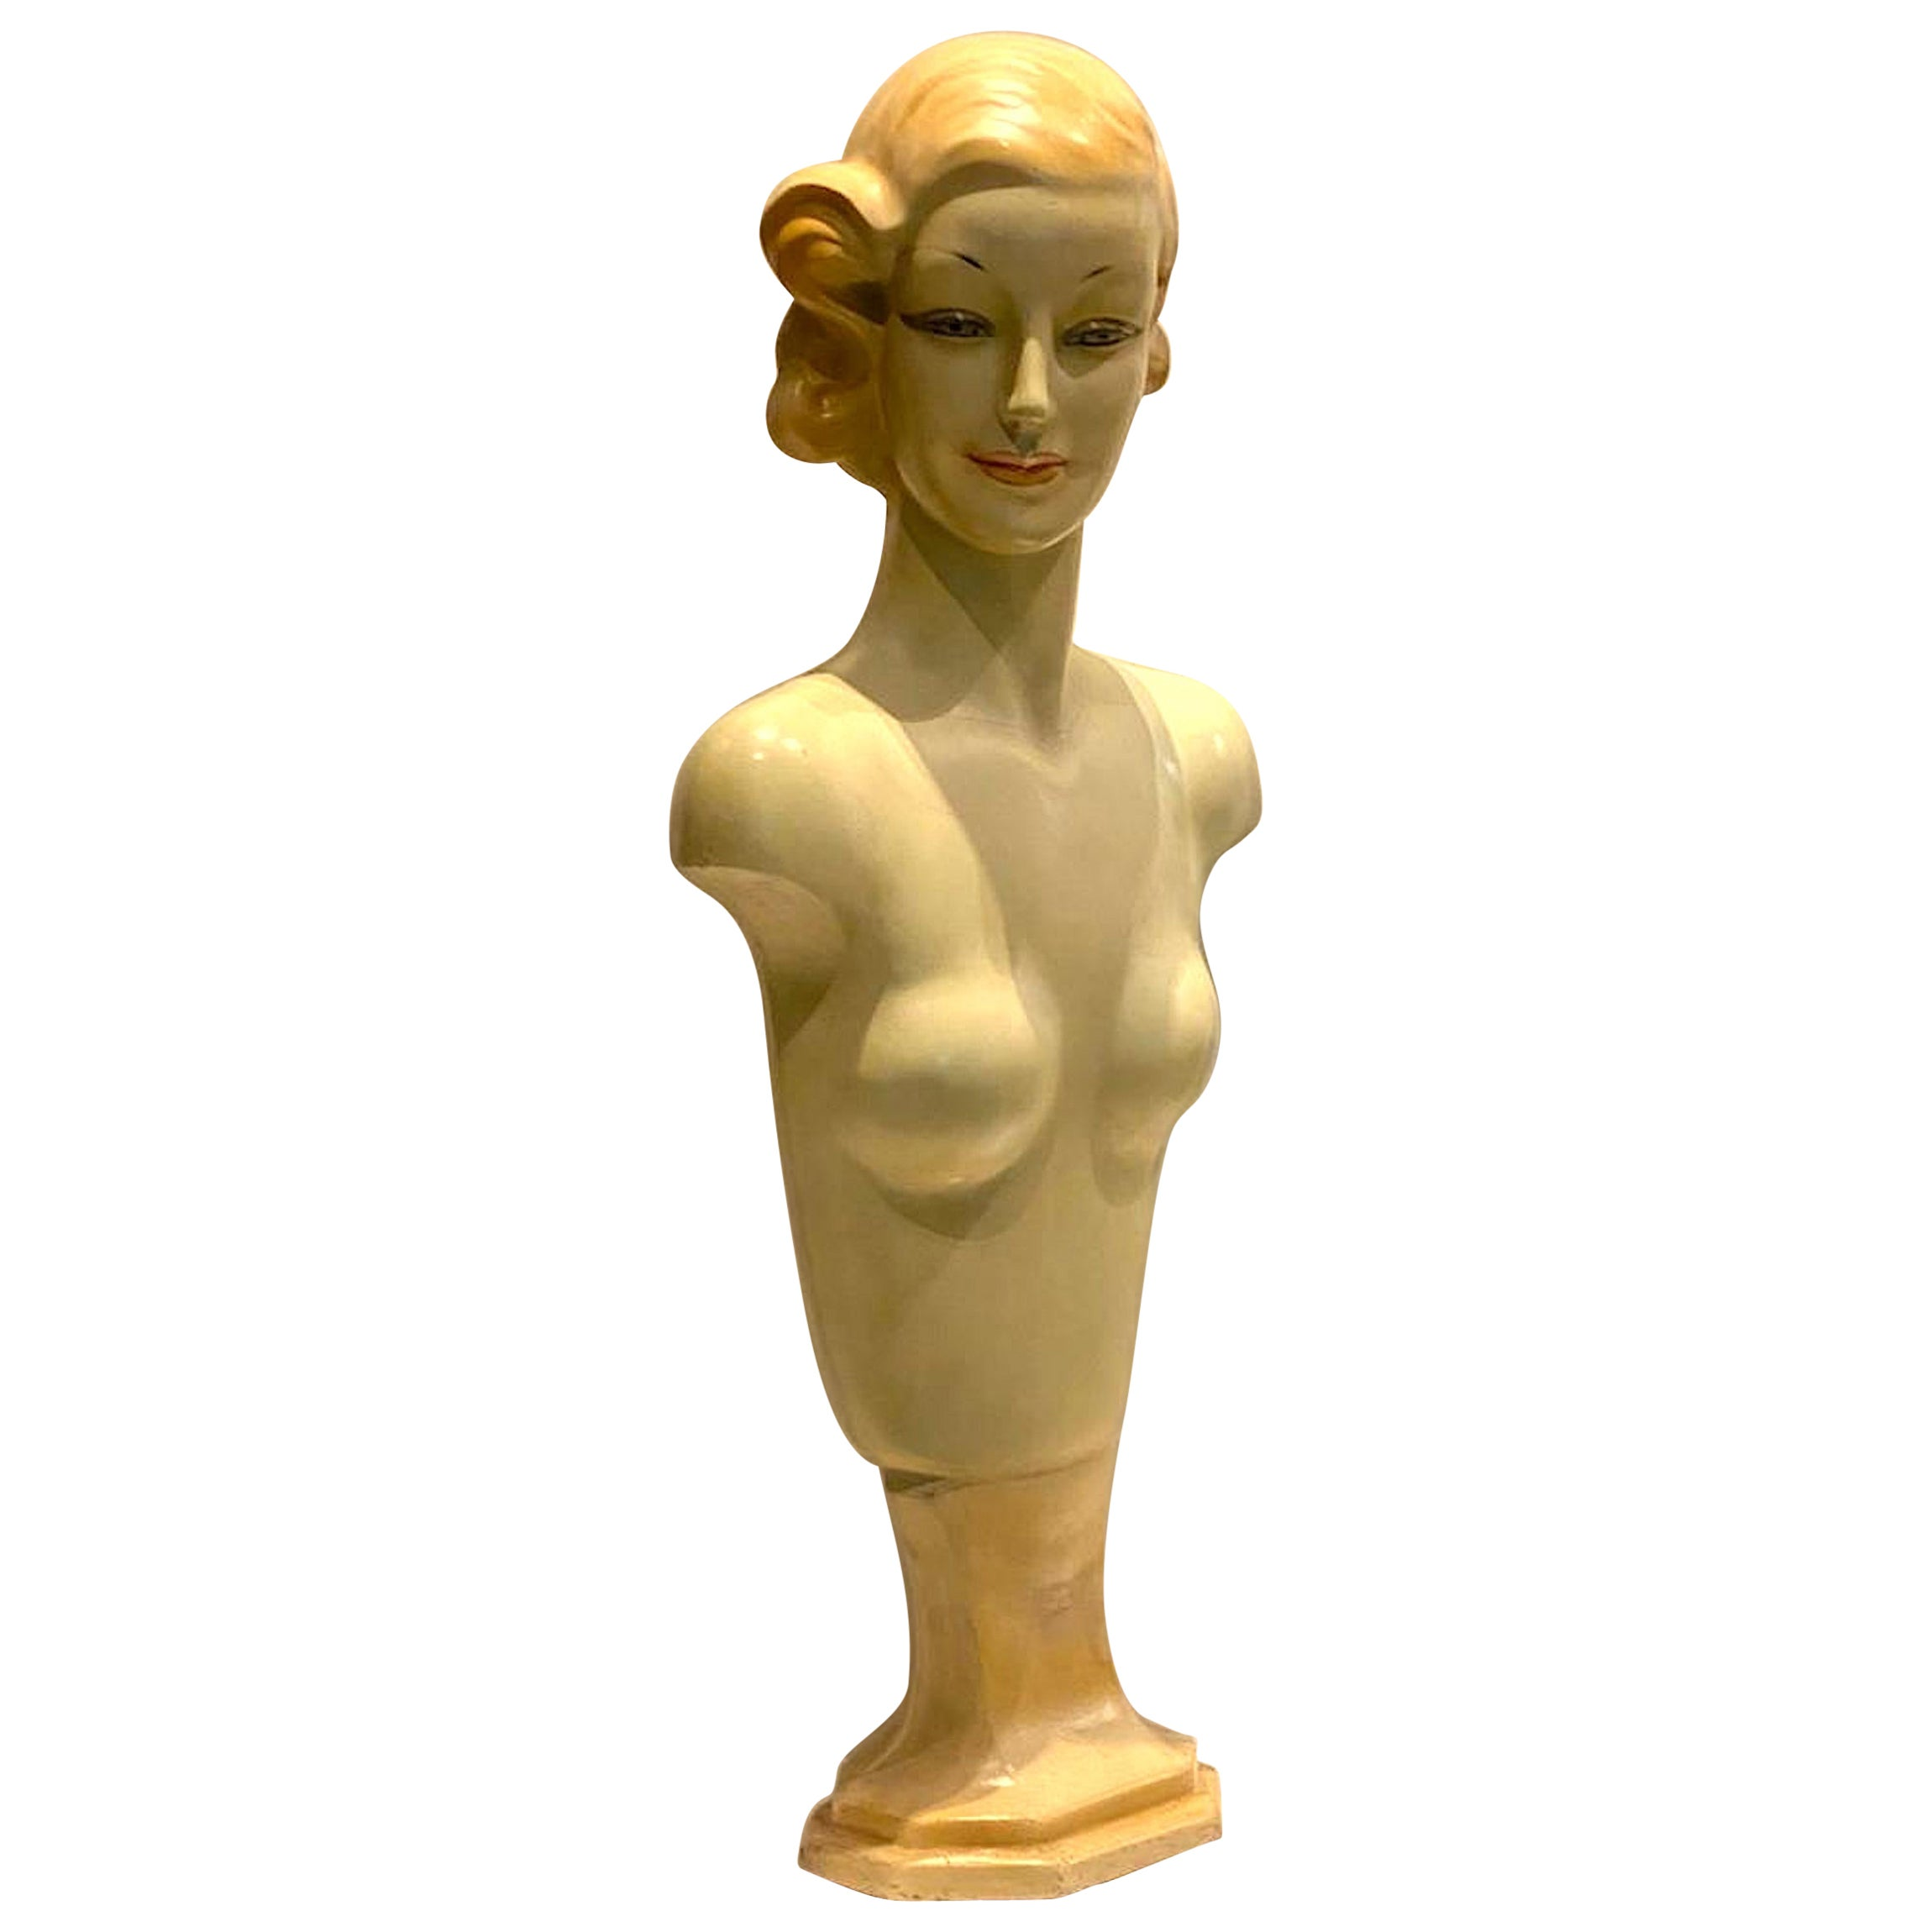 Large French Art Deco Mannequin Display of 1930s Chic Woman